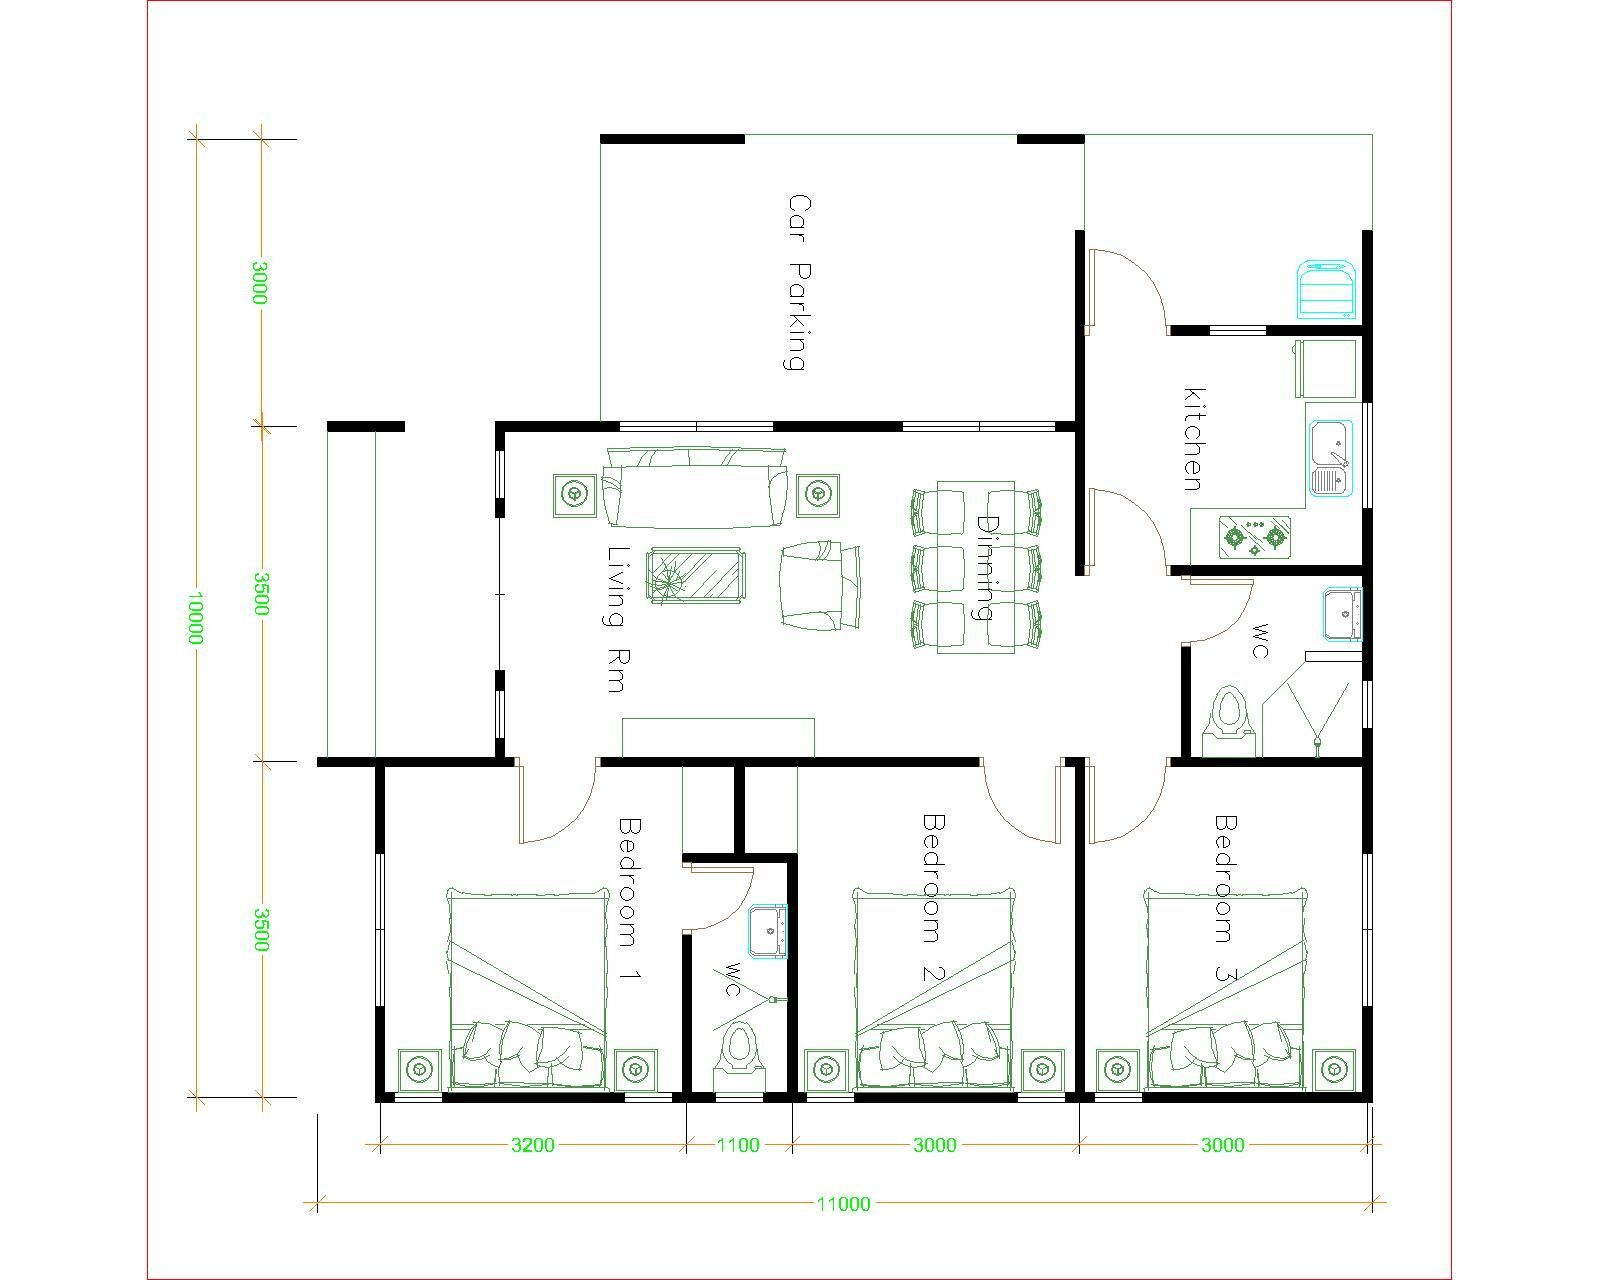 House Plans Design 10x11 With 3 Bedrooms Home Design Plans